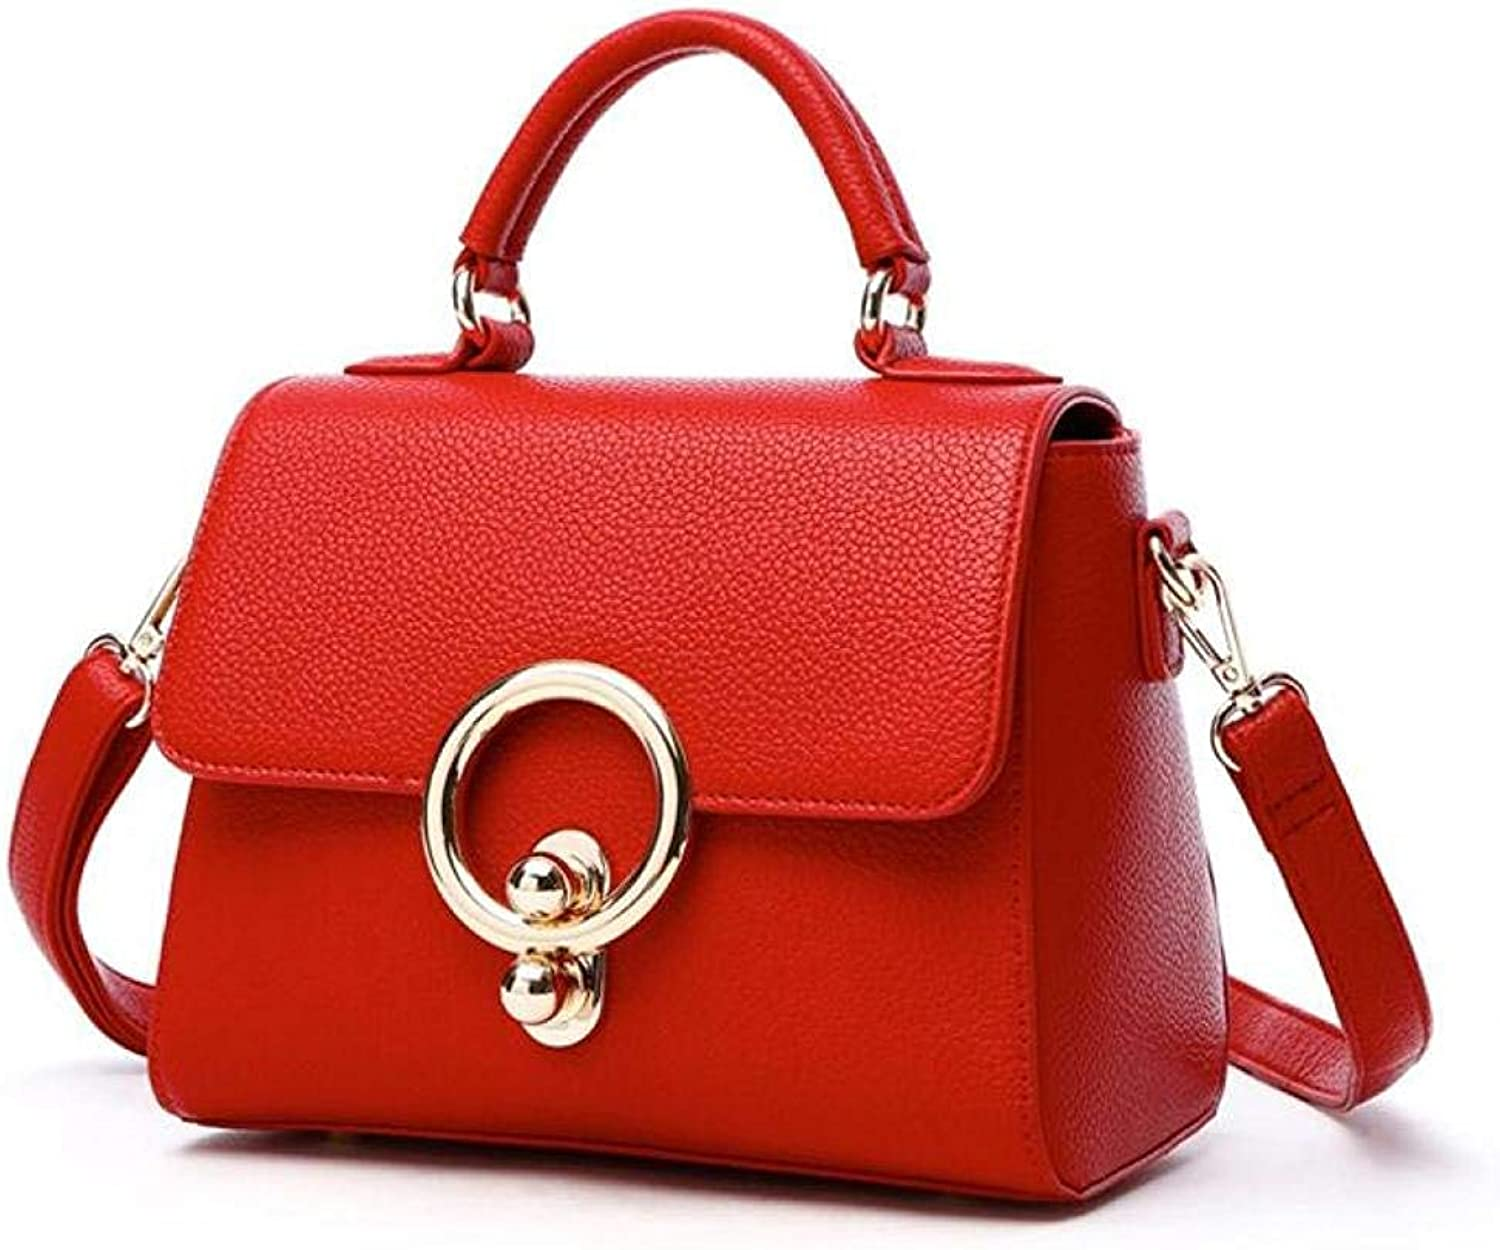 Ladies Handbag Ladies Handbags Shoulder Bags Autumn and Winter Casual Fashion Small Square Bag (color   Red, Size   One Size)